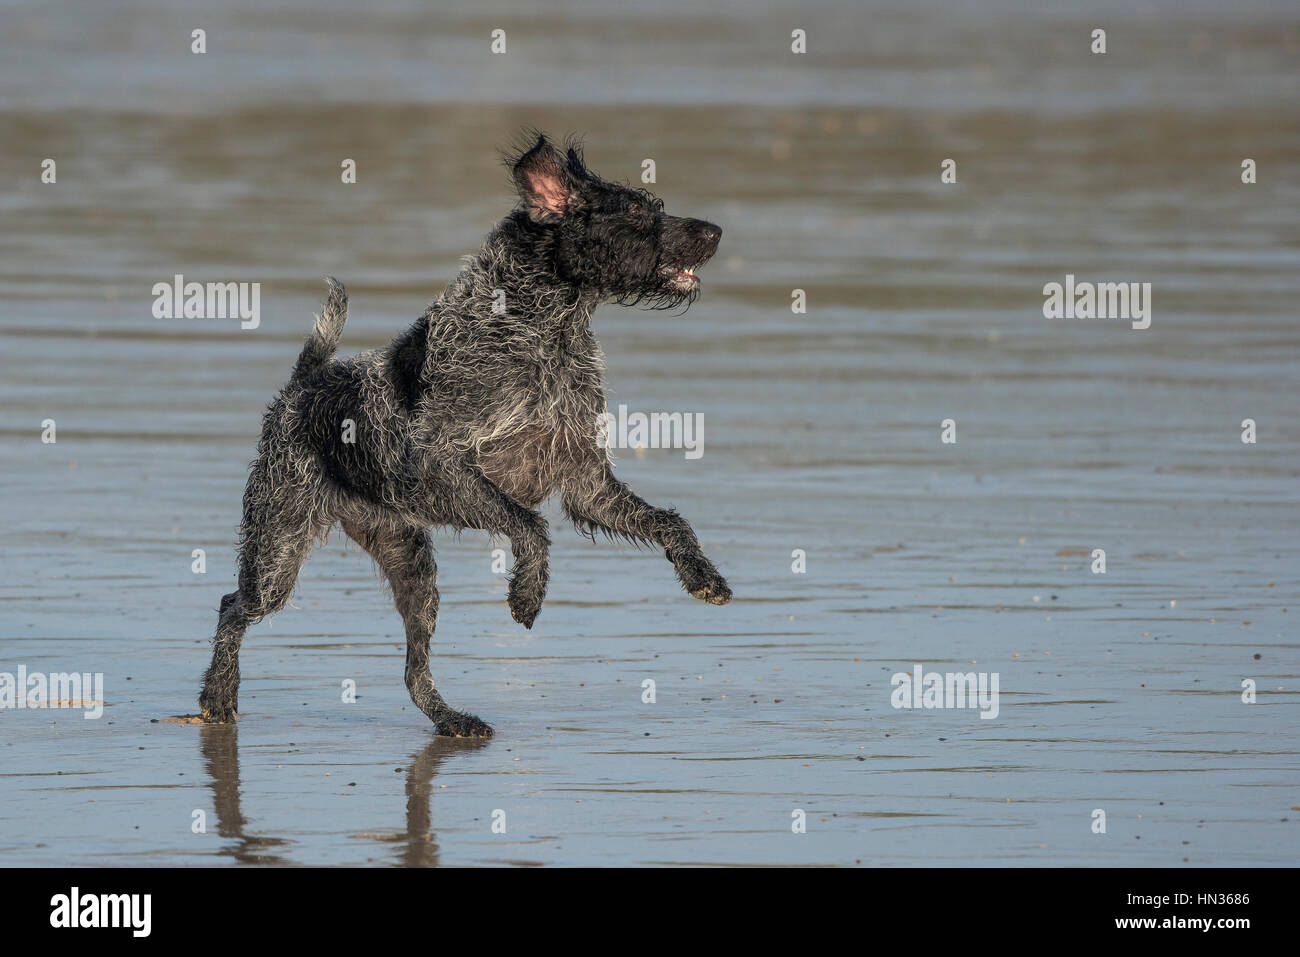 German Wire Haired Pointer Stock Photos & German Wire Haired Pointer ...